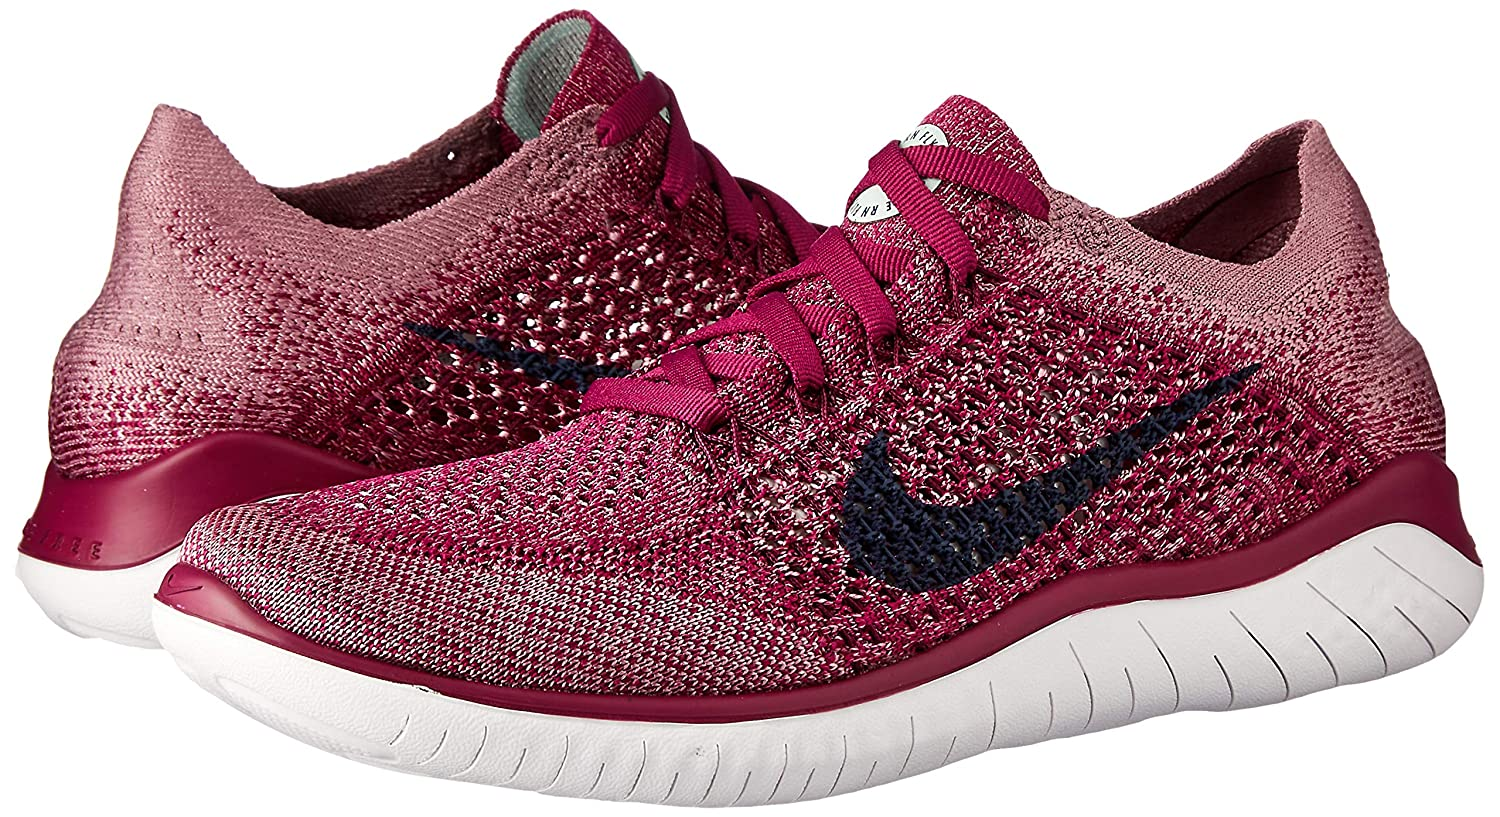 new style 85e66 1c3d8 Nike Free RN Flyknit 2018 Women's Running Shoe Raspberry RED/Blue  Void-White-Teal Tint 10.0